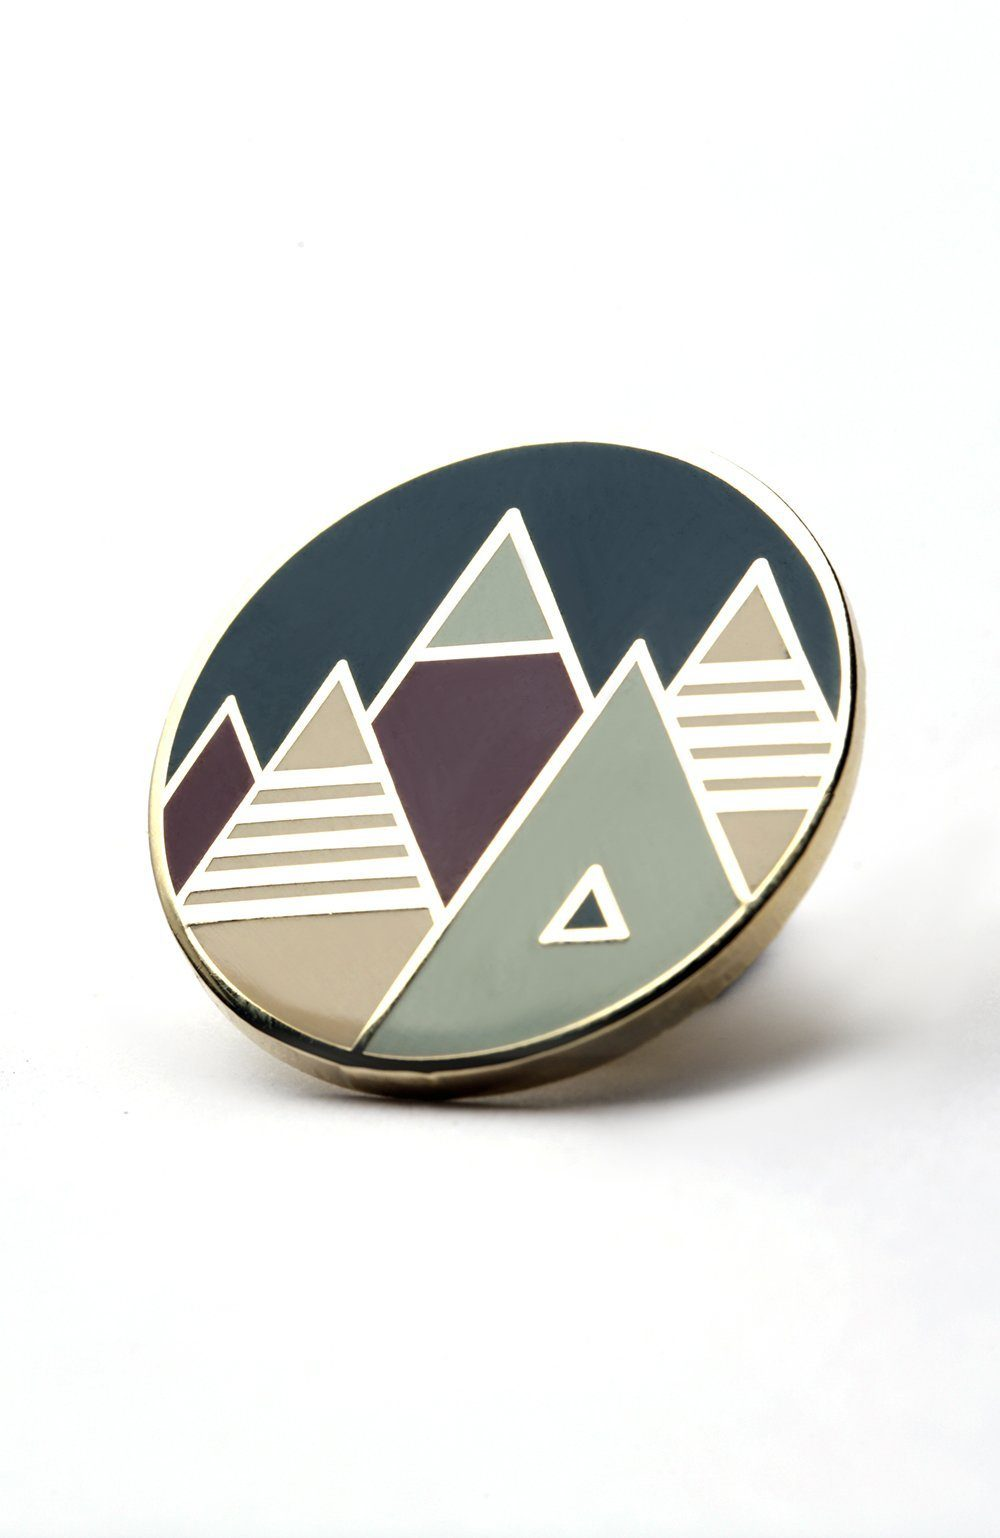 Purple Mountains Majesty Enamel Pin - The Parks Apparel